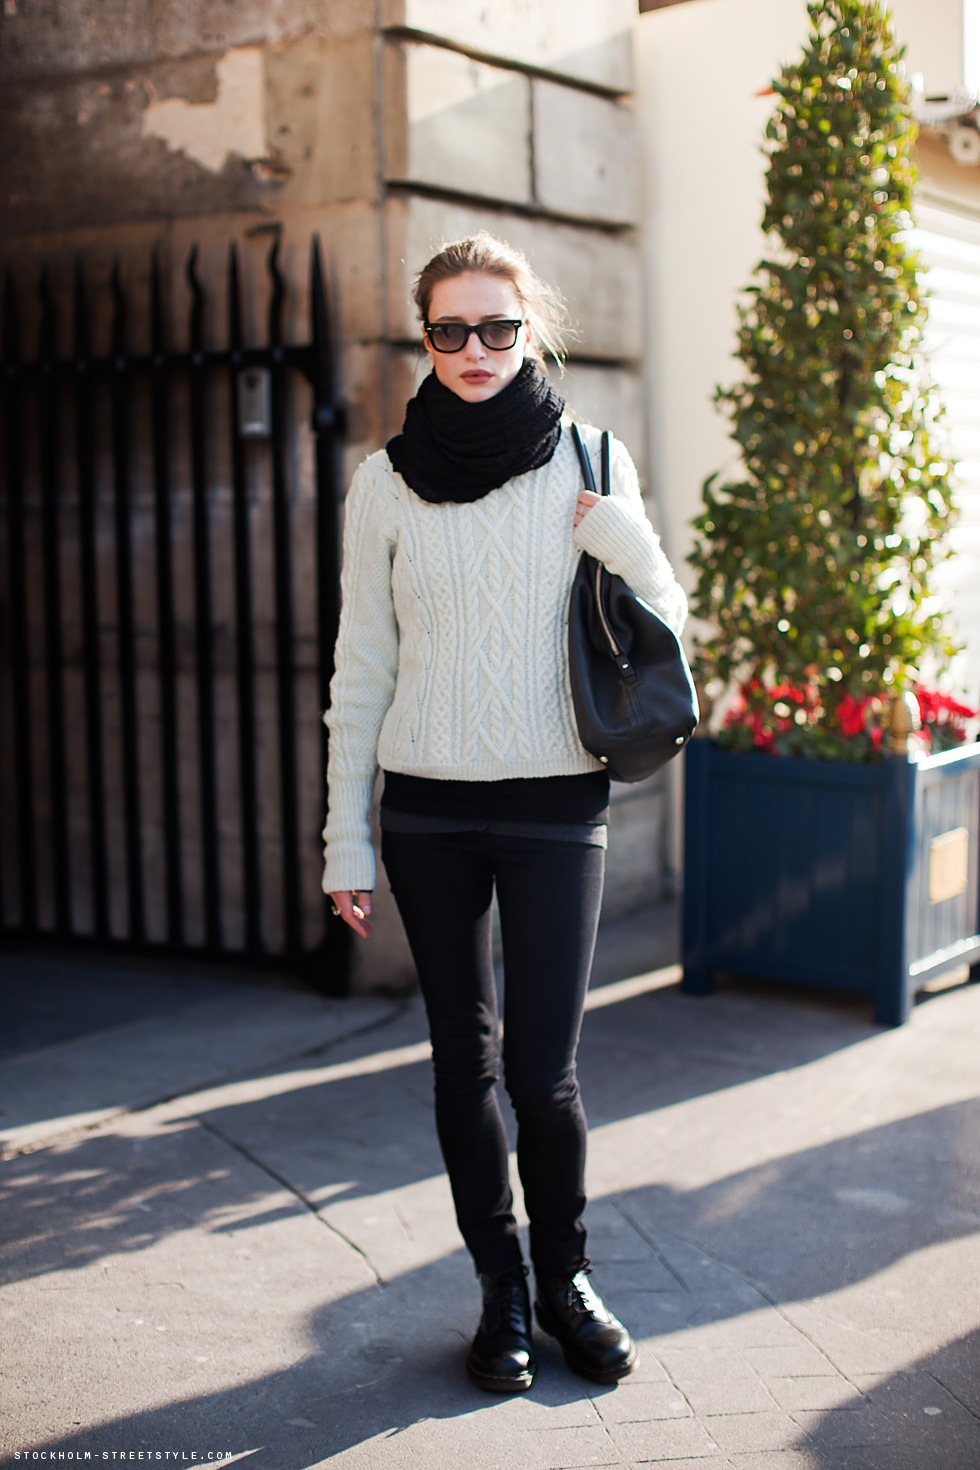 Knitorious Stockholm Street Style